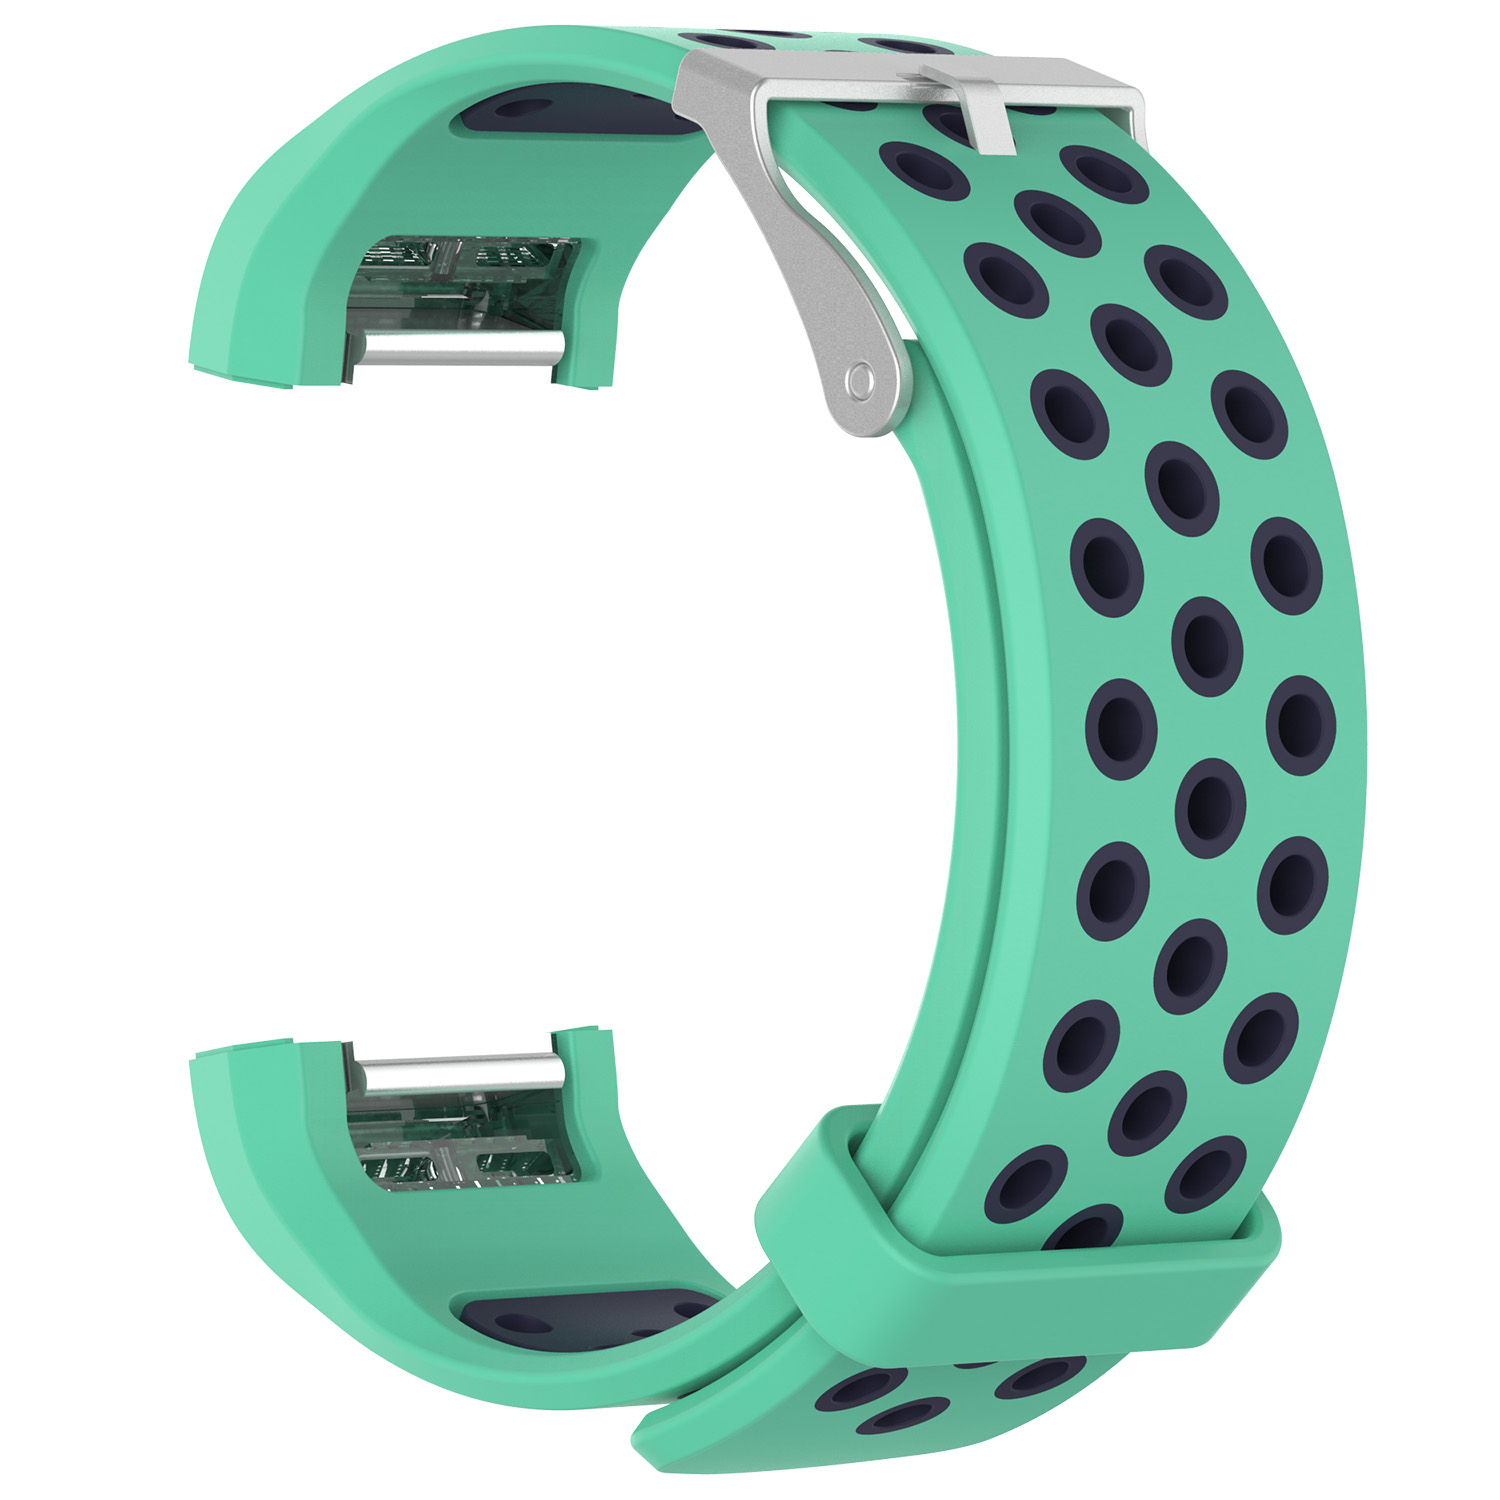 Replacement-Silicone-Wristband-Watch-Strap-Bands-Bracelet-For-Fitbit-Charge-2 thumbnail 95